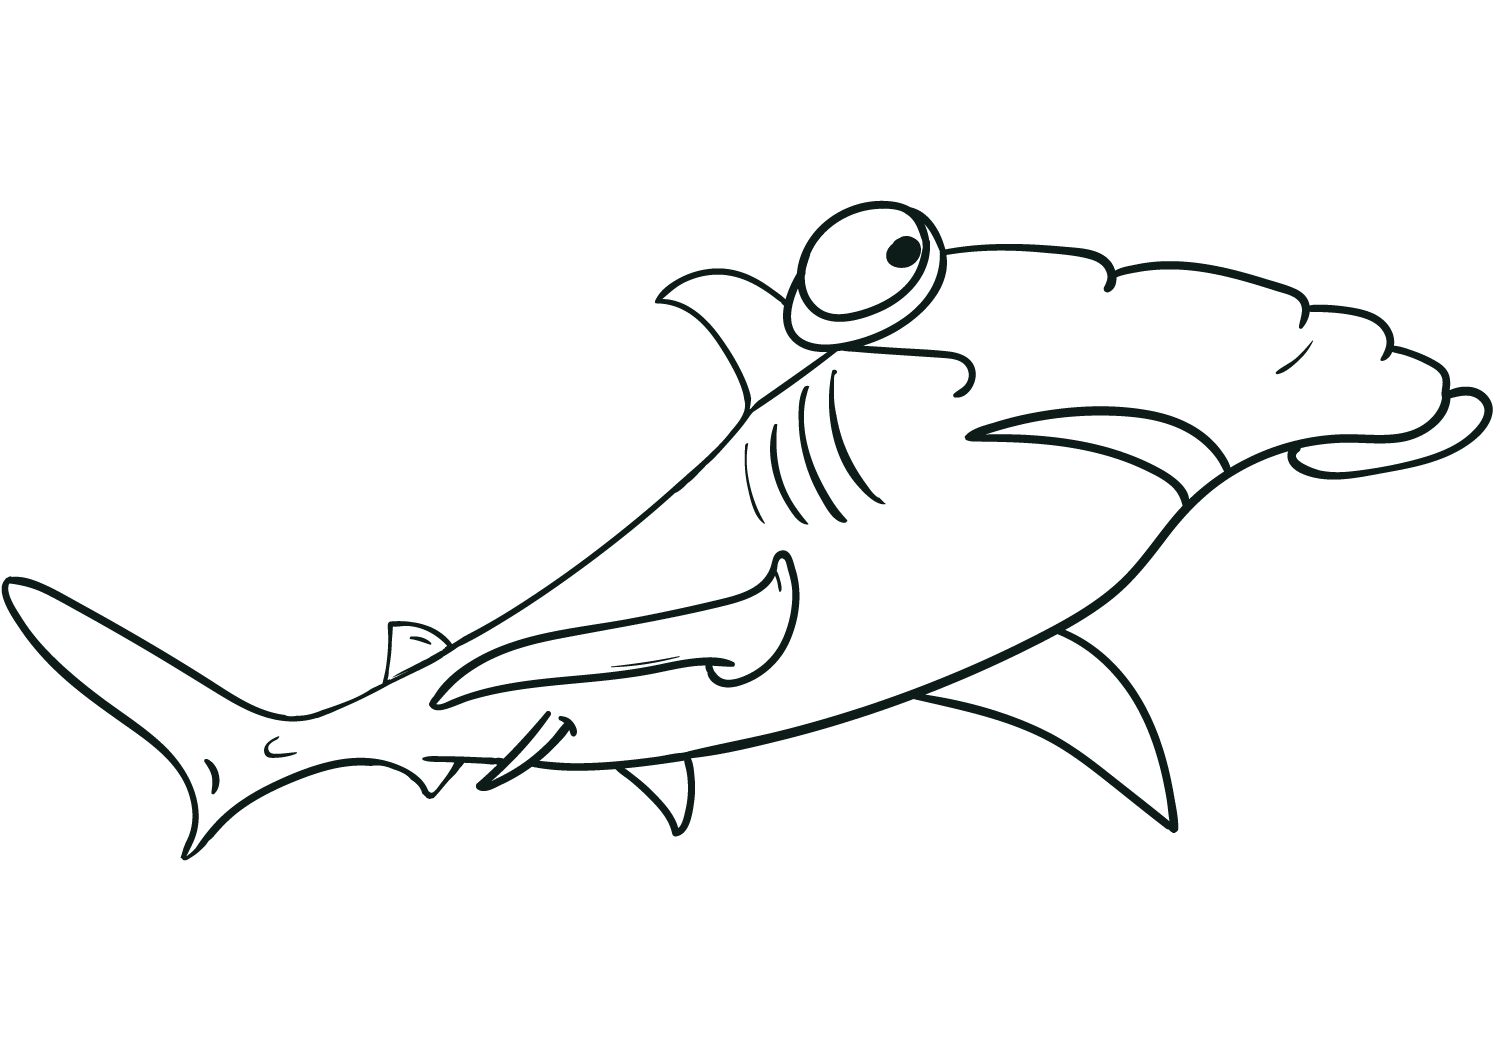 Silly hammerhead shark has big round eyes Coloring Pages